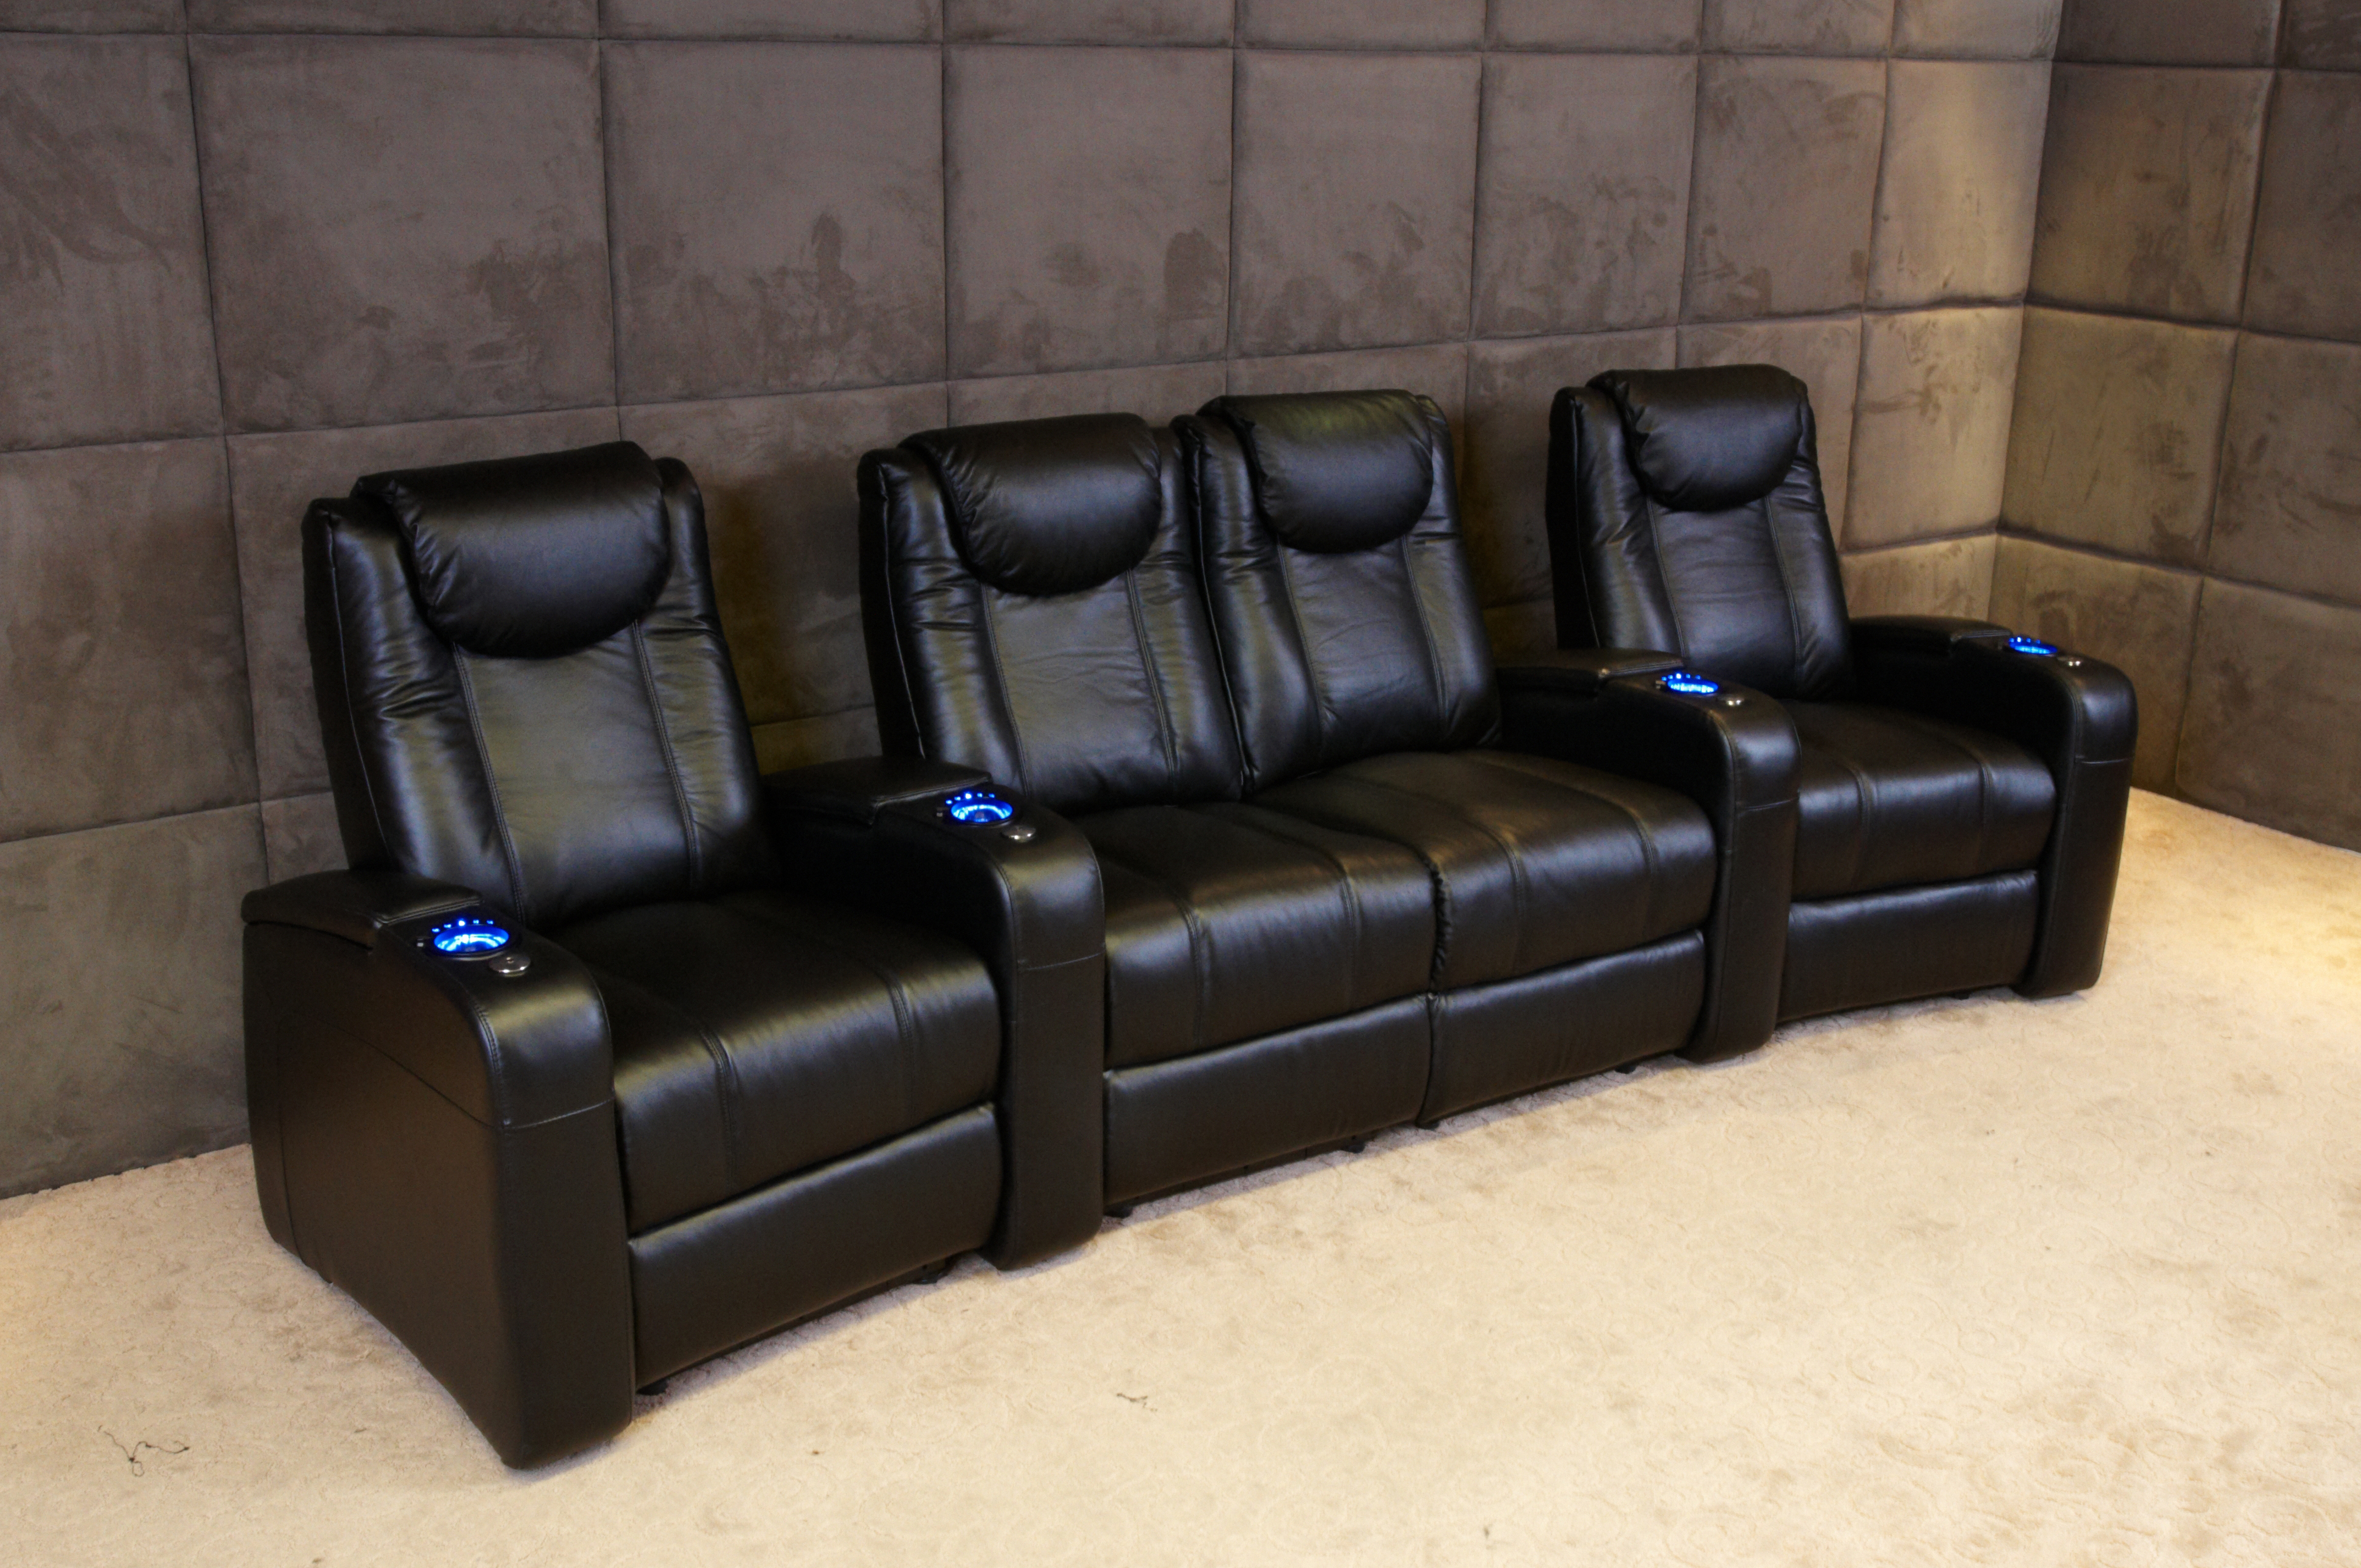 my new fusion lagoon chairs from roman page 32 avs home theater discussions and reviews. Black Bedroom Furniture Sets. Home Design Ideas